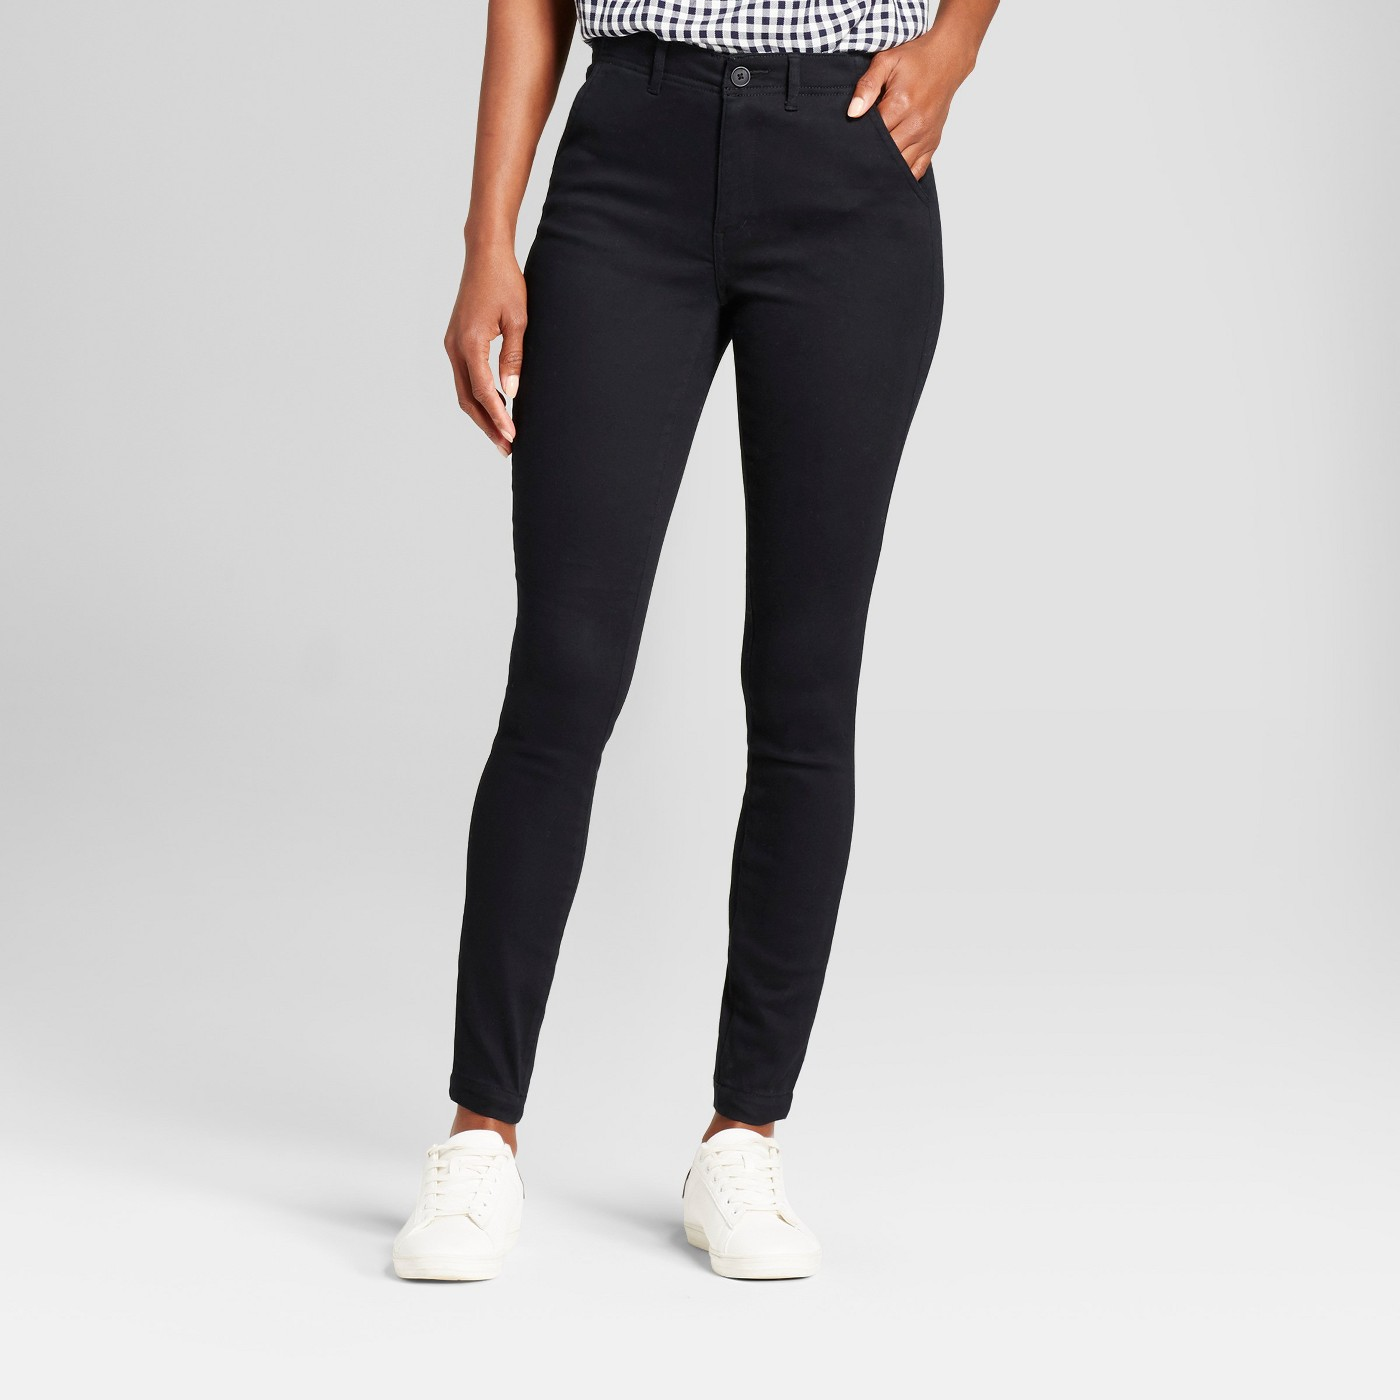 Women's Skinny Chino Pants - A New Day™ - image 1 of 3